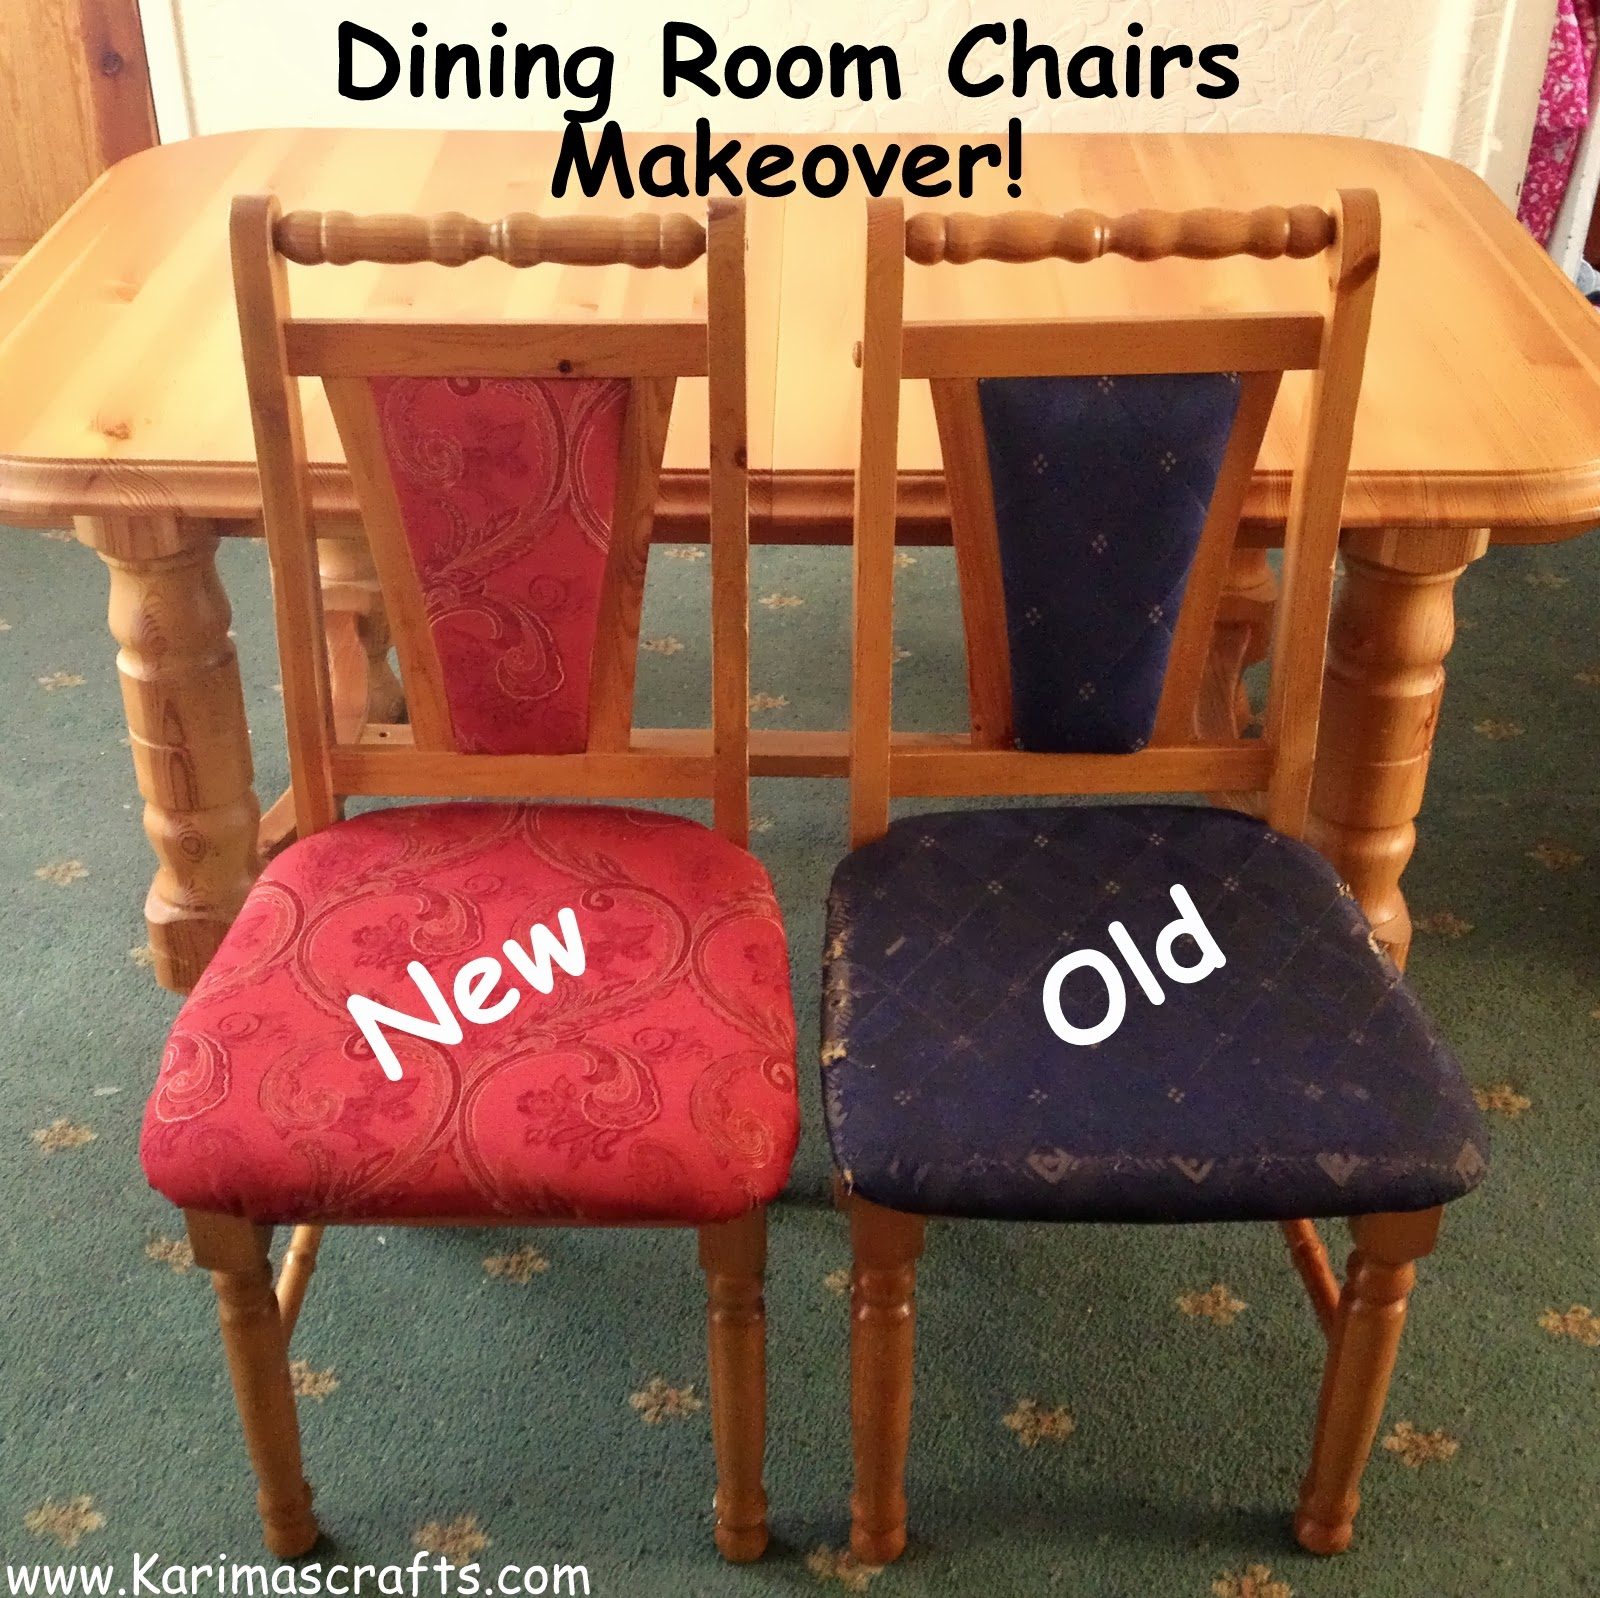 Reupholstered Dining Room Chairs Tutorial And More!